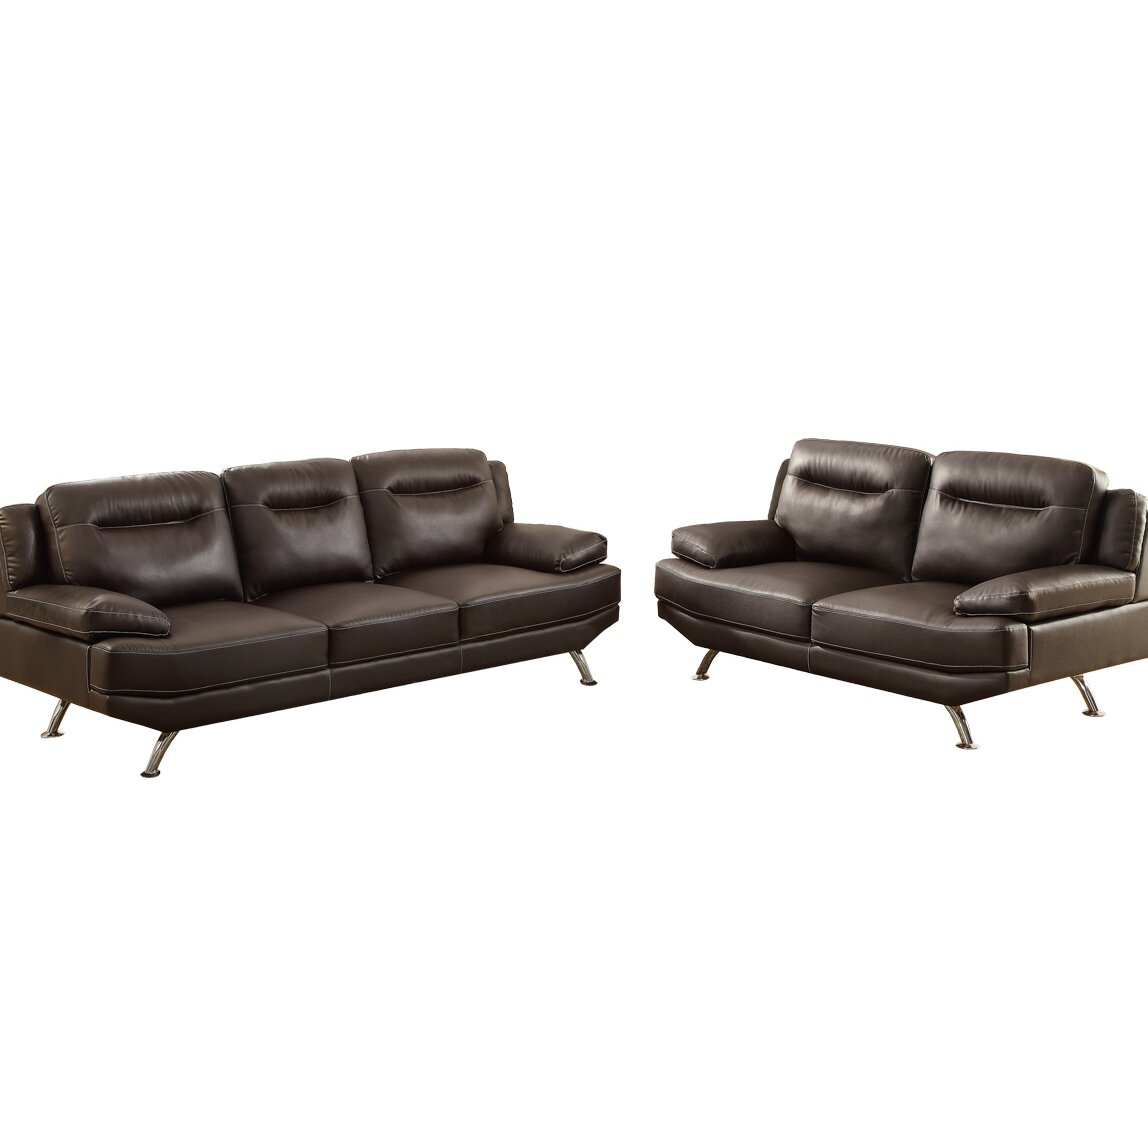 Poundex bobkona danville 2 piece sofa and loveseat set for 2 piece furniture set